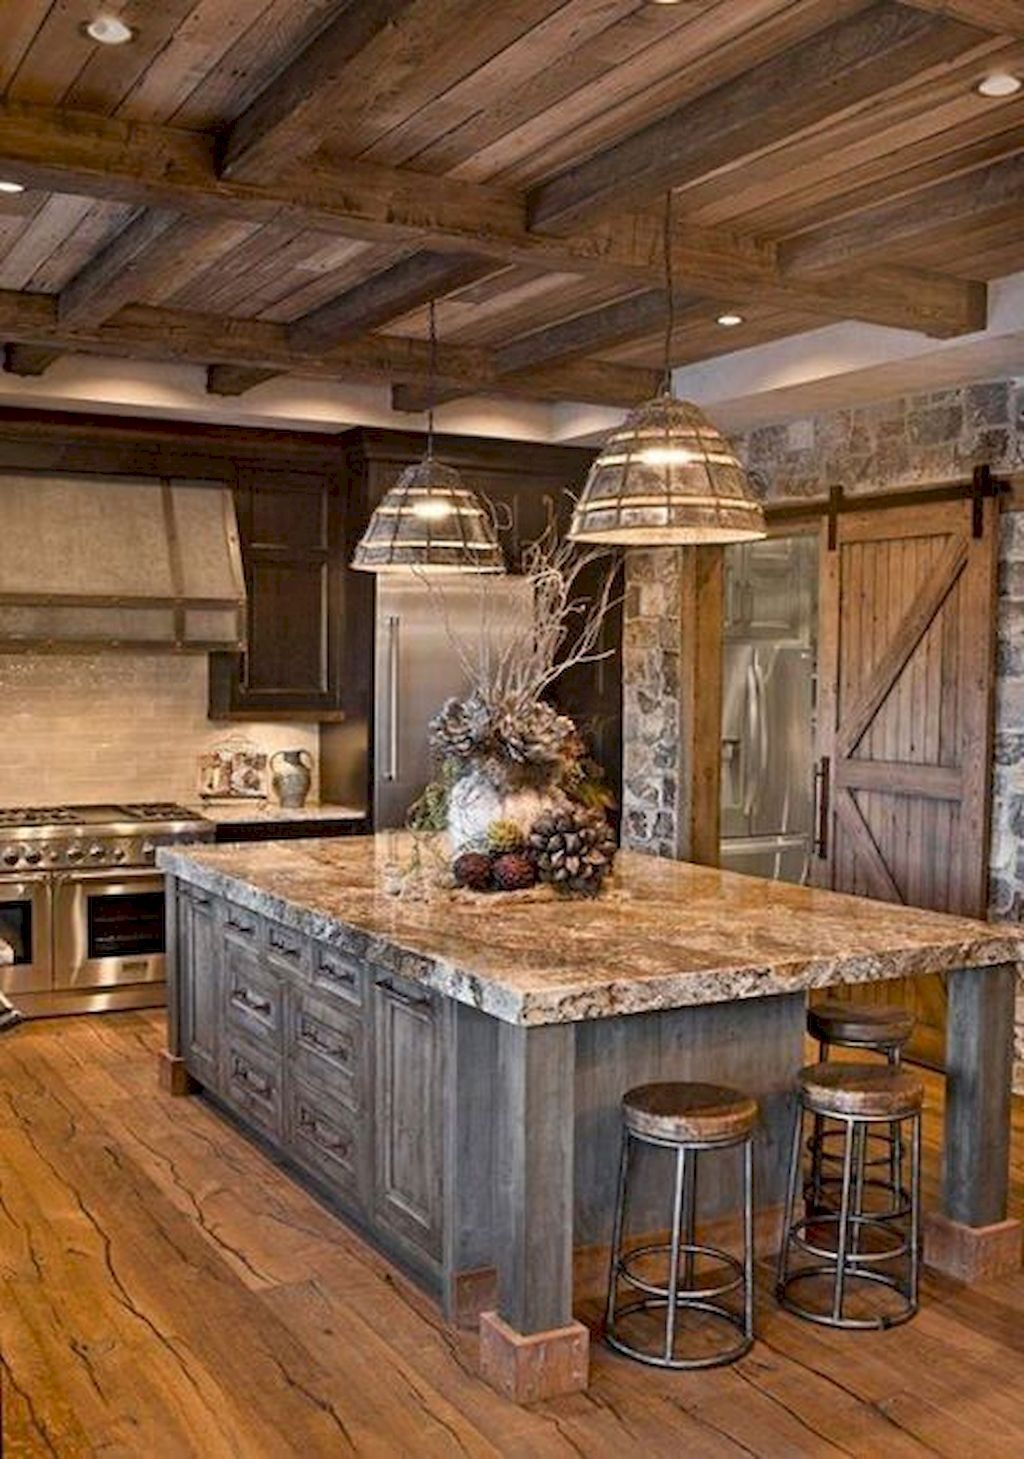 70 modern rustic farmhouse kitchen cabinets ideas rustic kitchen design rustic country on farmhouse kitchen cabinets id=93301